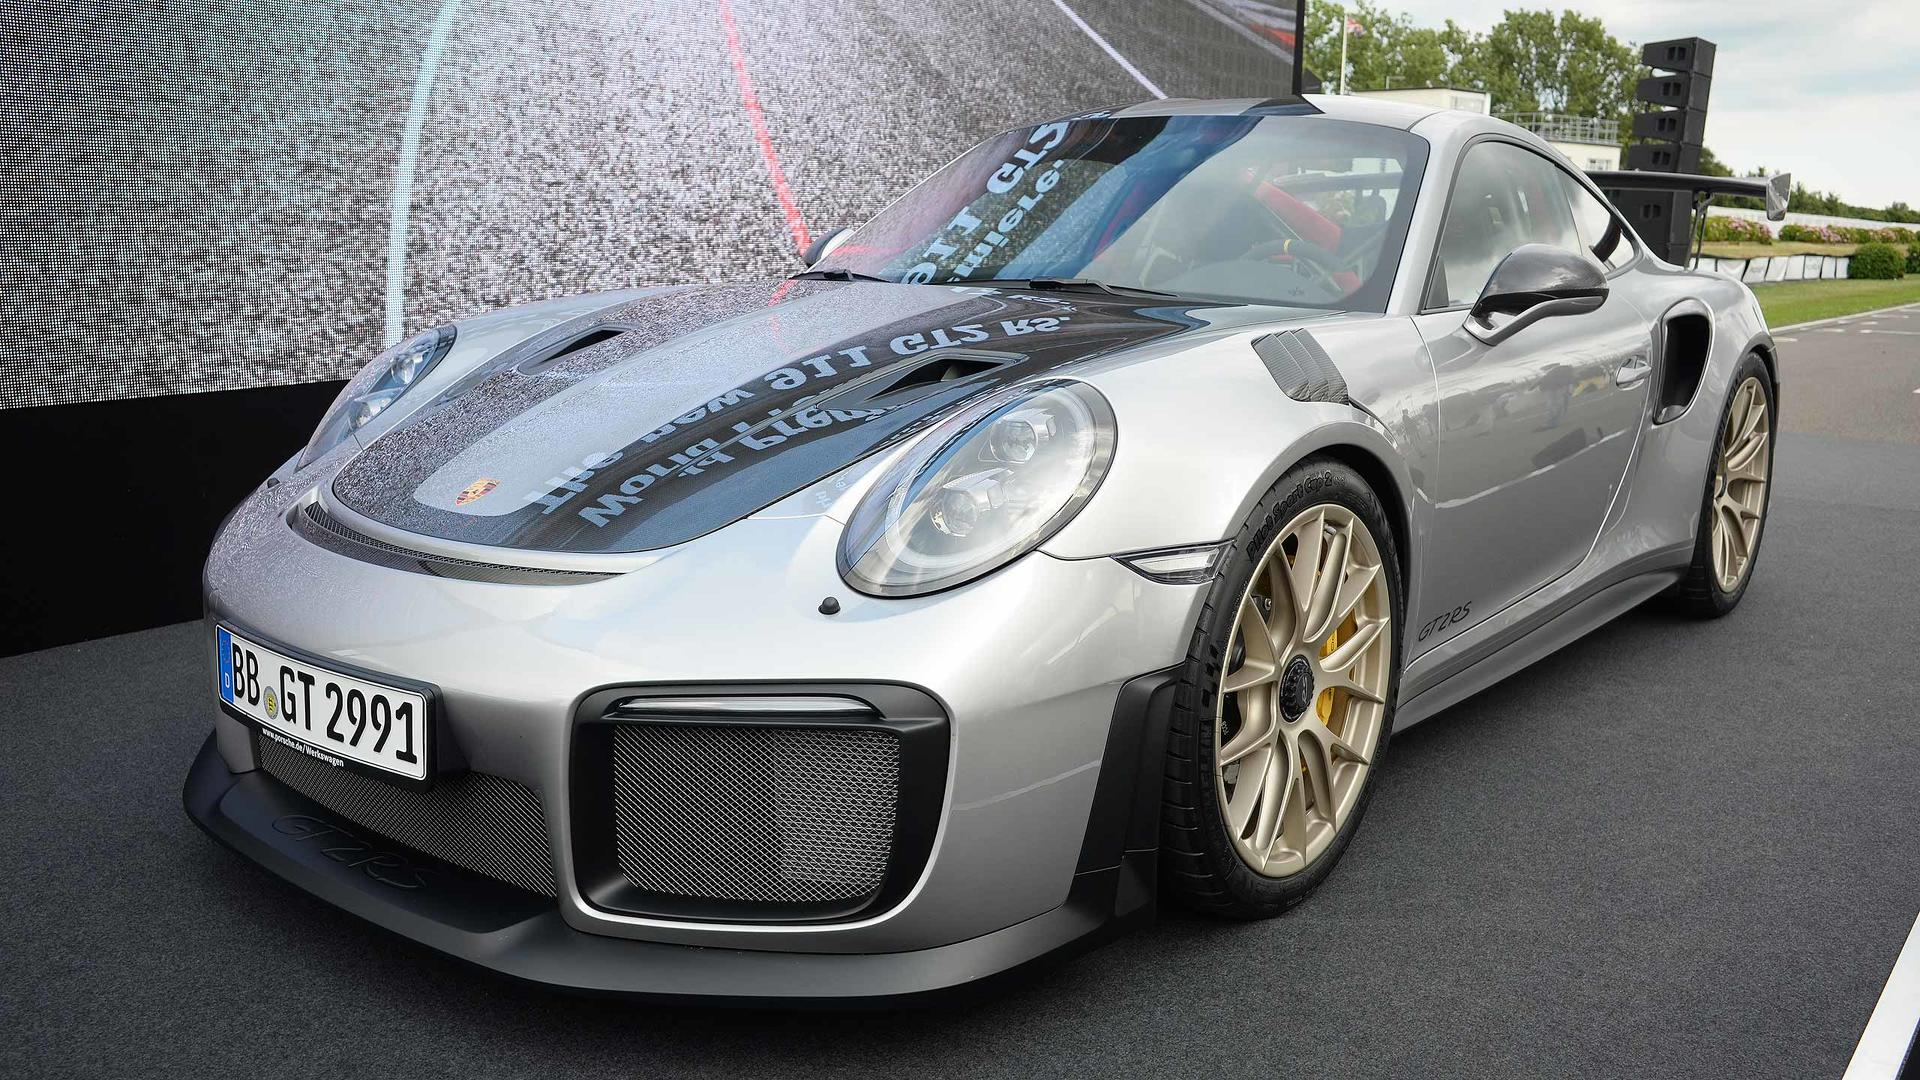 2018-porsche-911-gt2-rs-at-2017-goodwood-festival-of-speed Cozy Porsche 911 Gt2 Rs Wallpaper Cars Trend